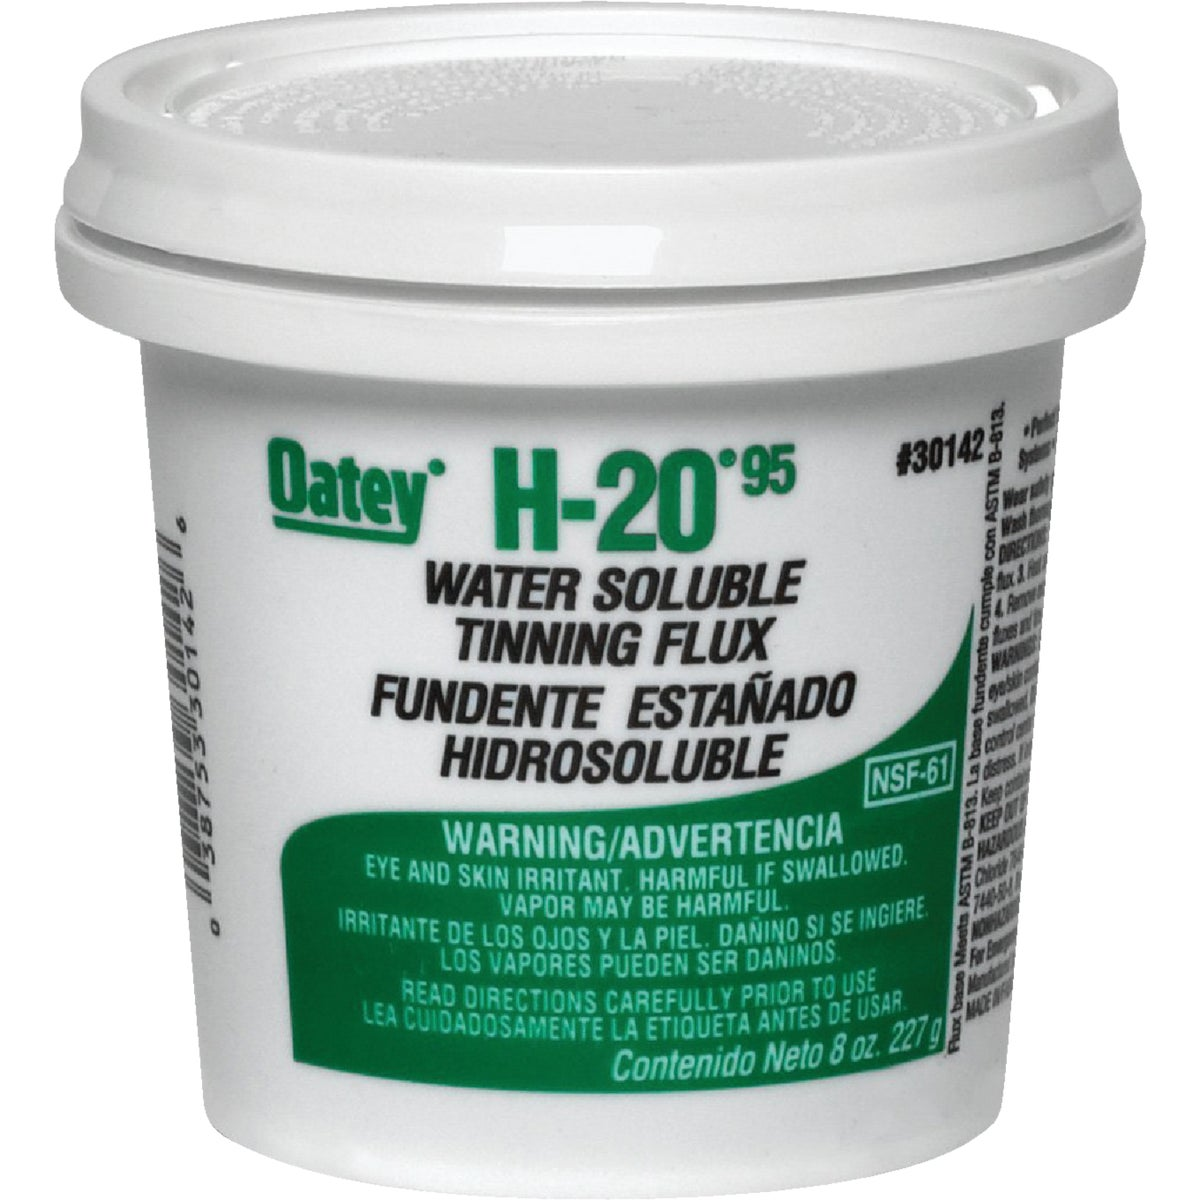 8OZ WATER SOLUBLE FLUX - 30142 by Oatey S C S